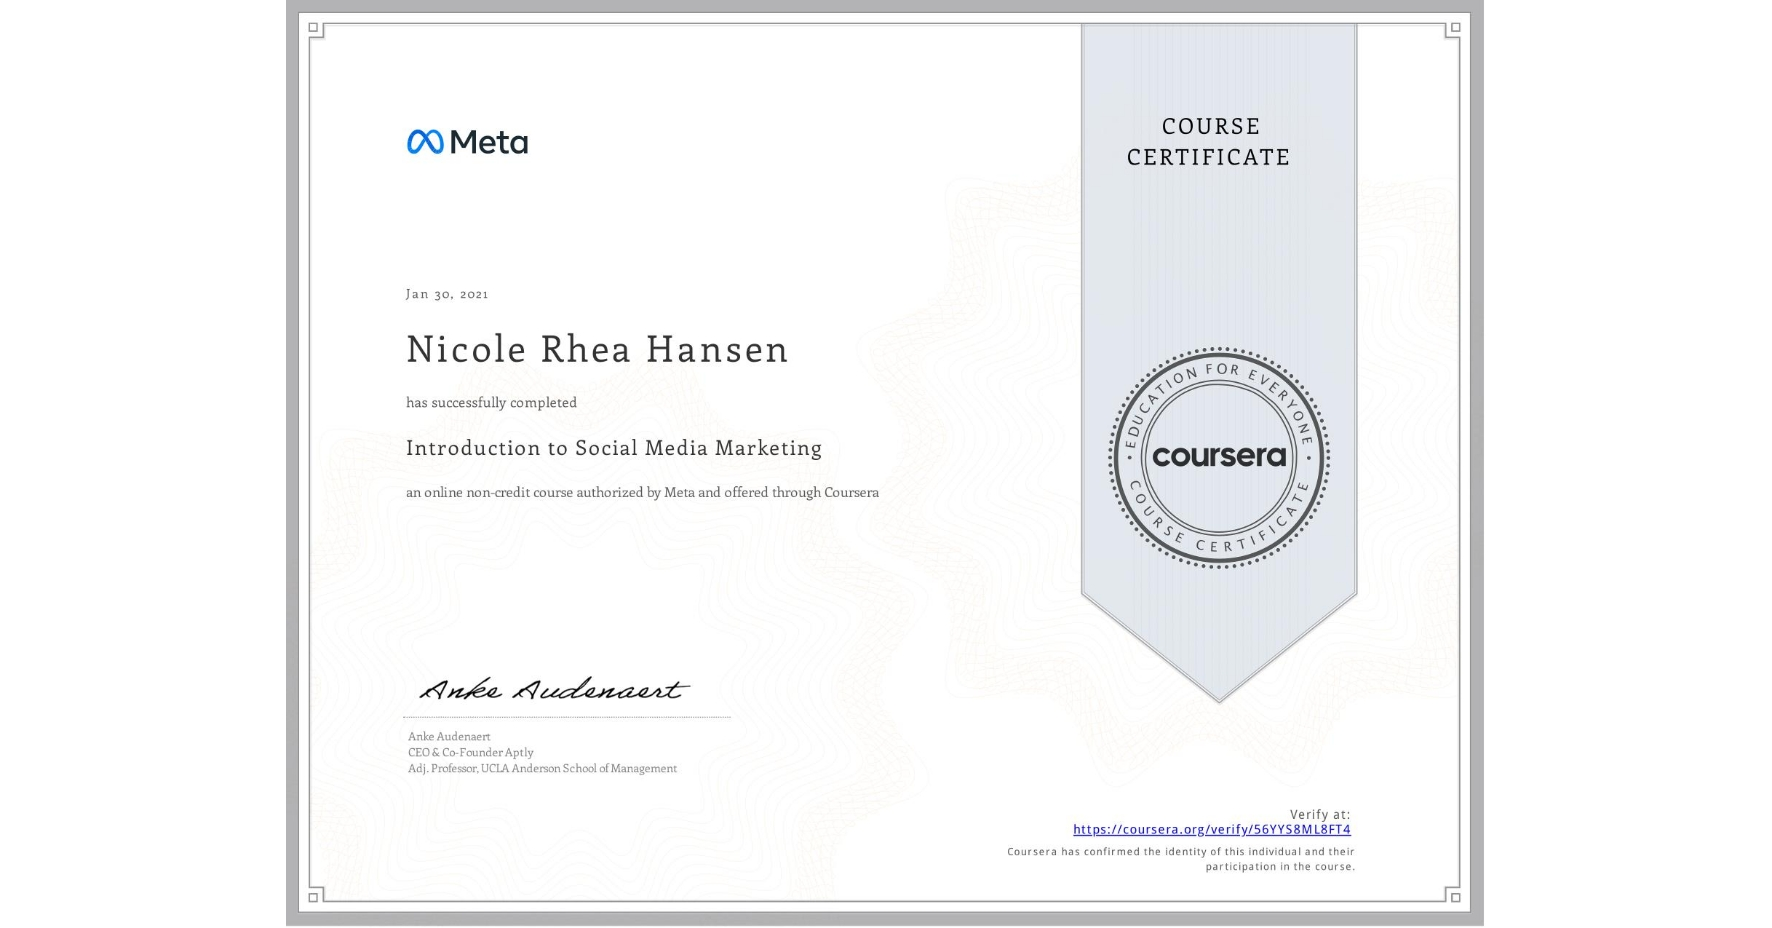 View certificate for Nicole Rhea Hansen, Introduction to Social Media Marketing, an online non-credit course authorized by Facebook and offered through Coursera